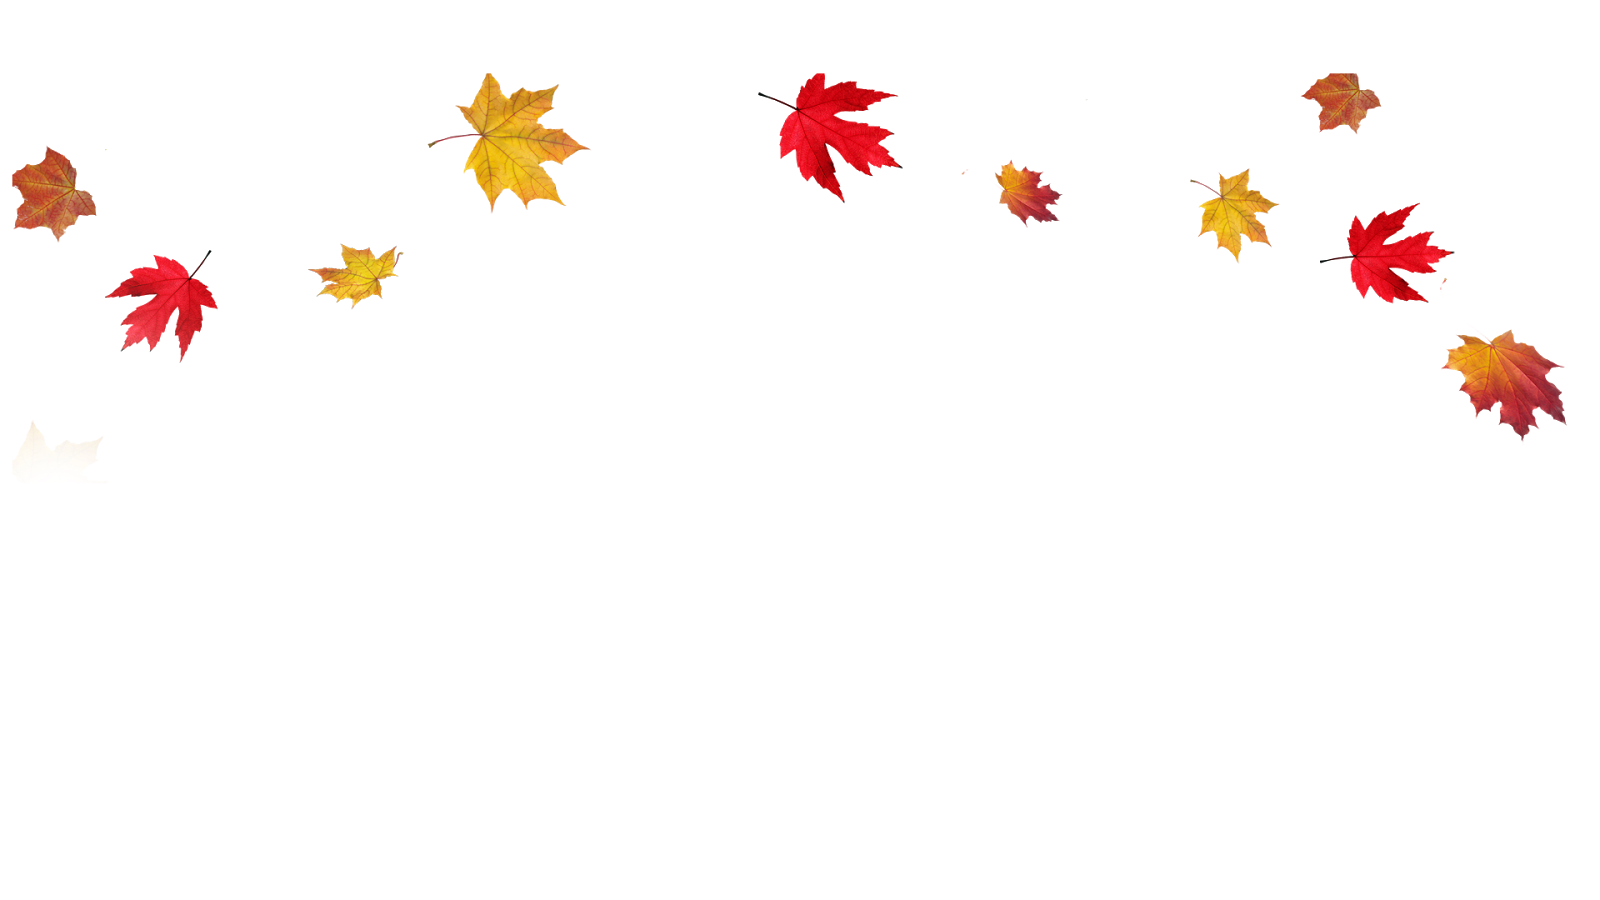 Falling Leaves Transparent Transparent Png Pictures Free